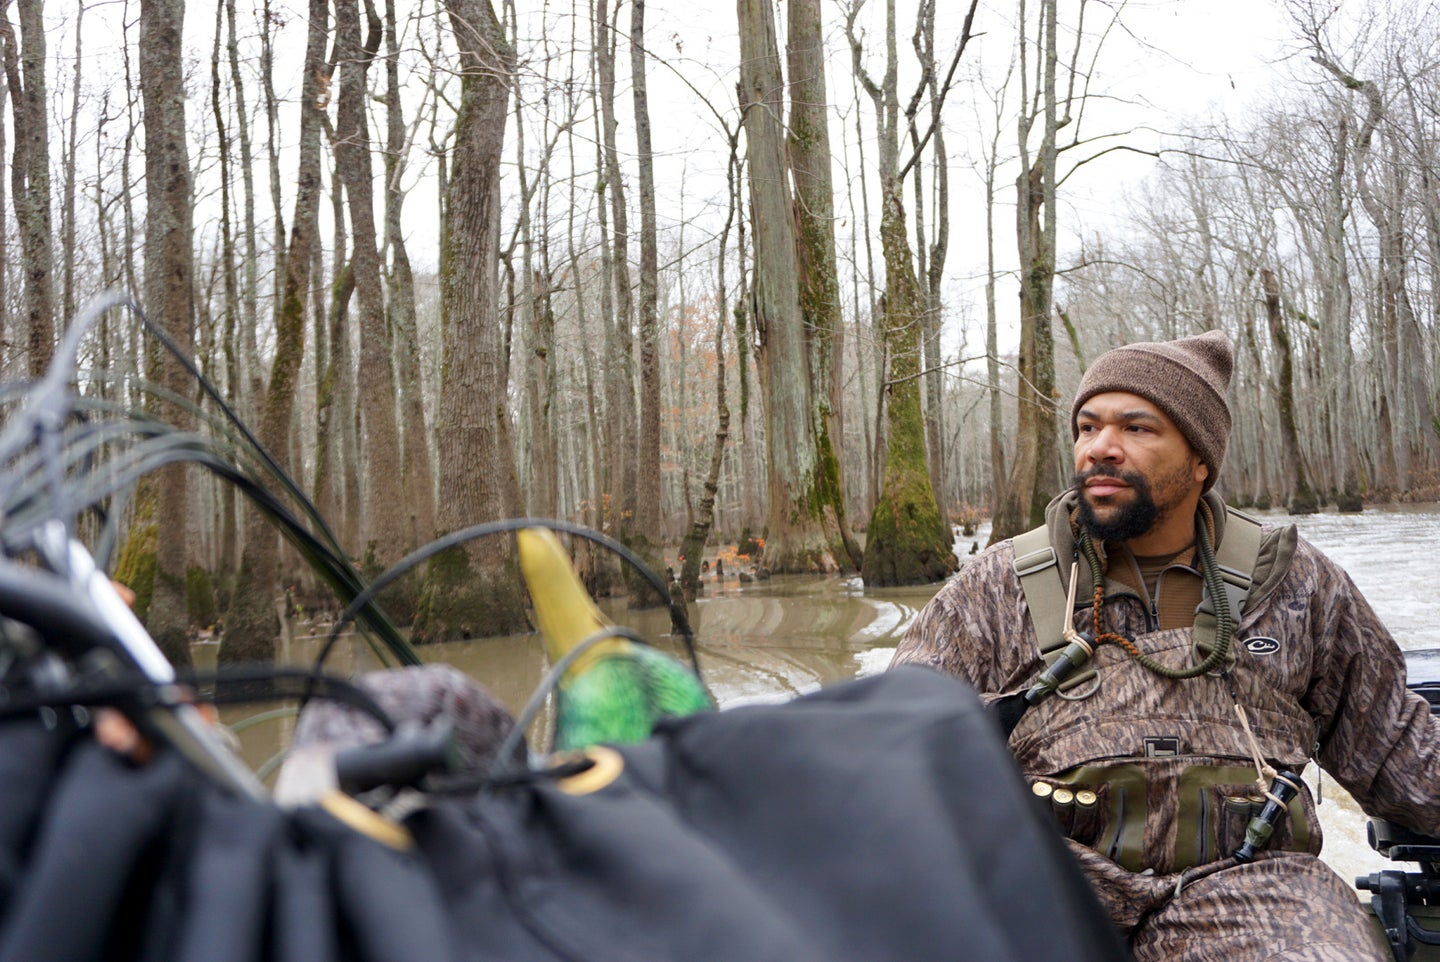 A duck hunter steers a boat loaded with decoys through flooded timber.